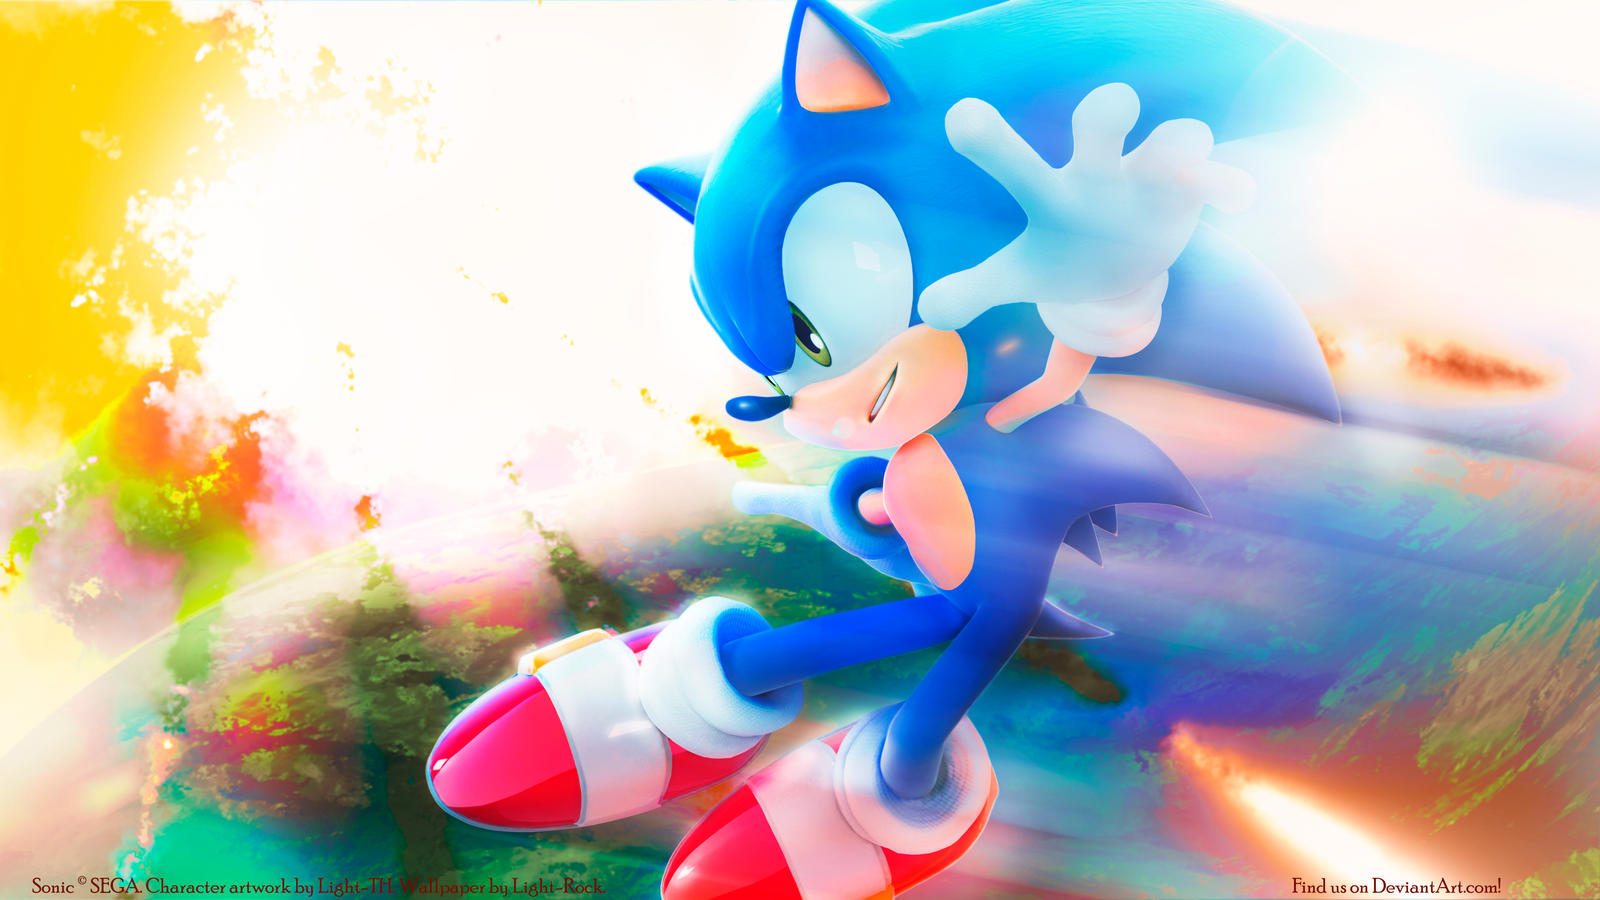 Sonic The Hedgehog Wallpapers By Light-Rock On DeviantArt